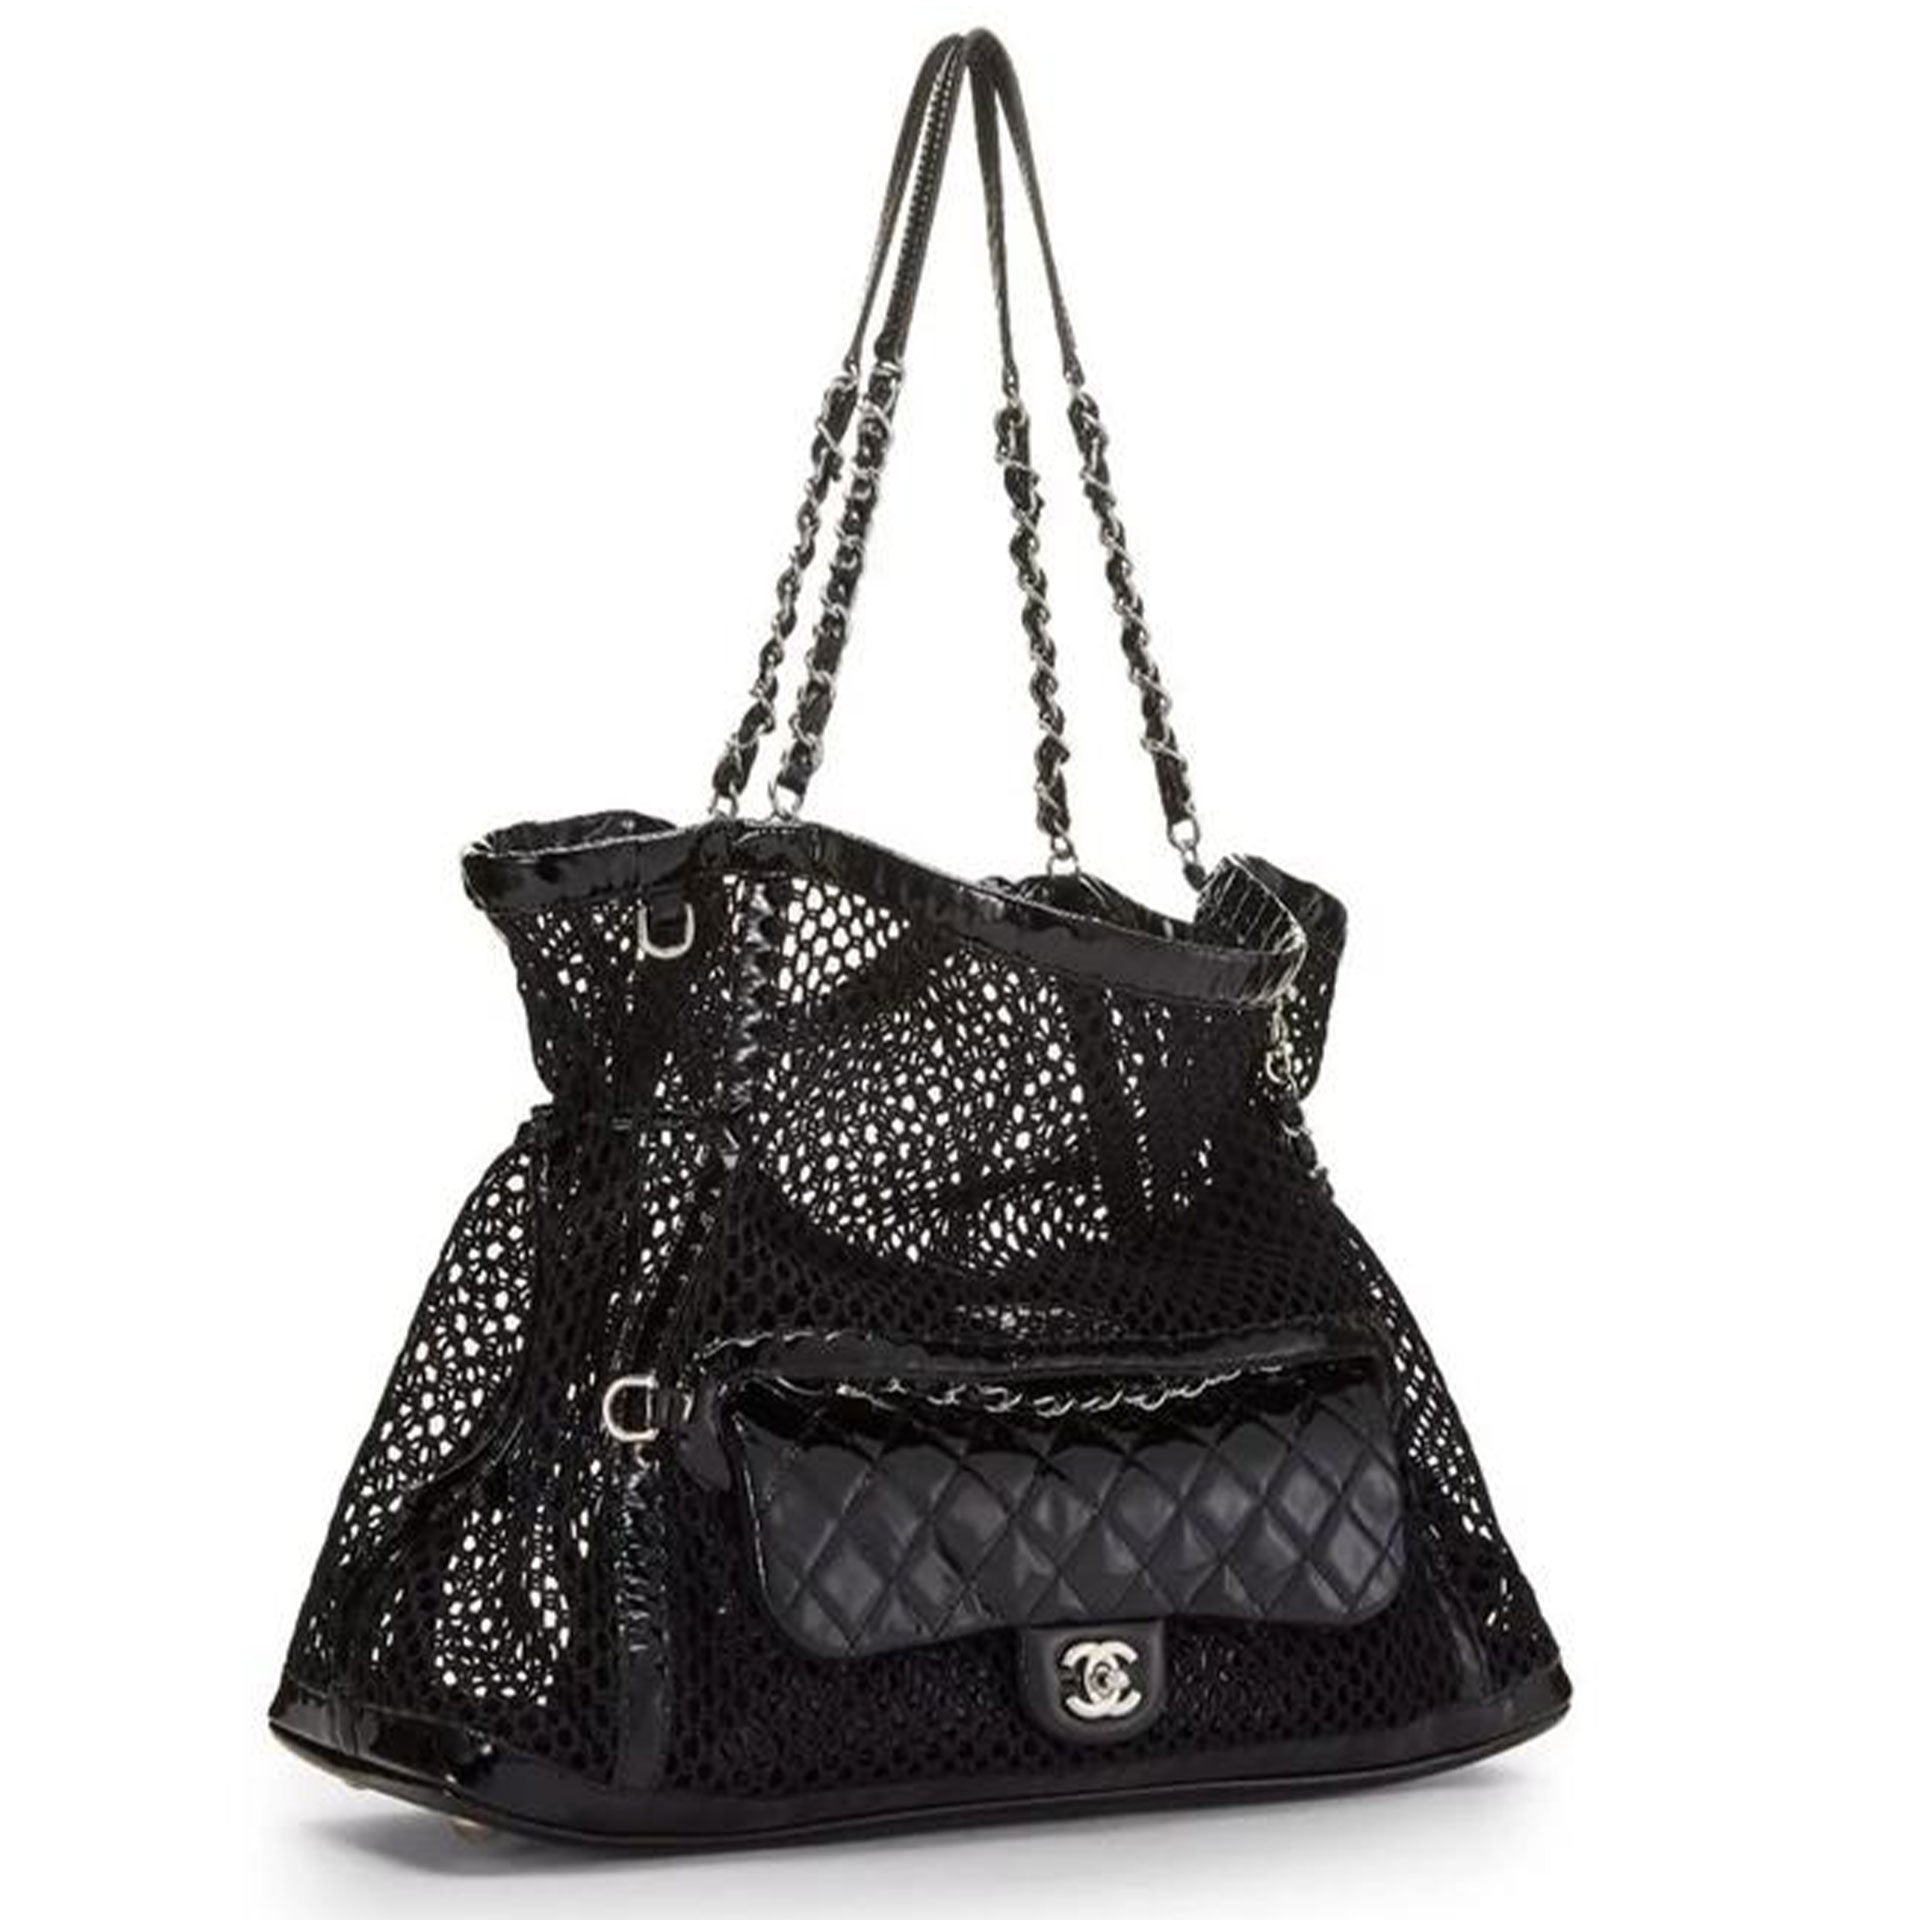 Chanel Shopping Classic Flap Cruise Mesh Woven Crochet 2 In 1 Black Patent Leather and Nylon Tote